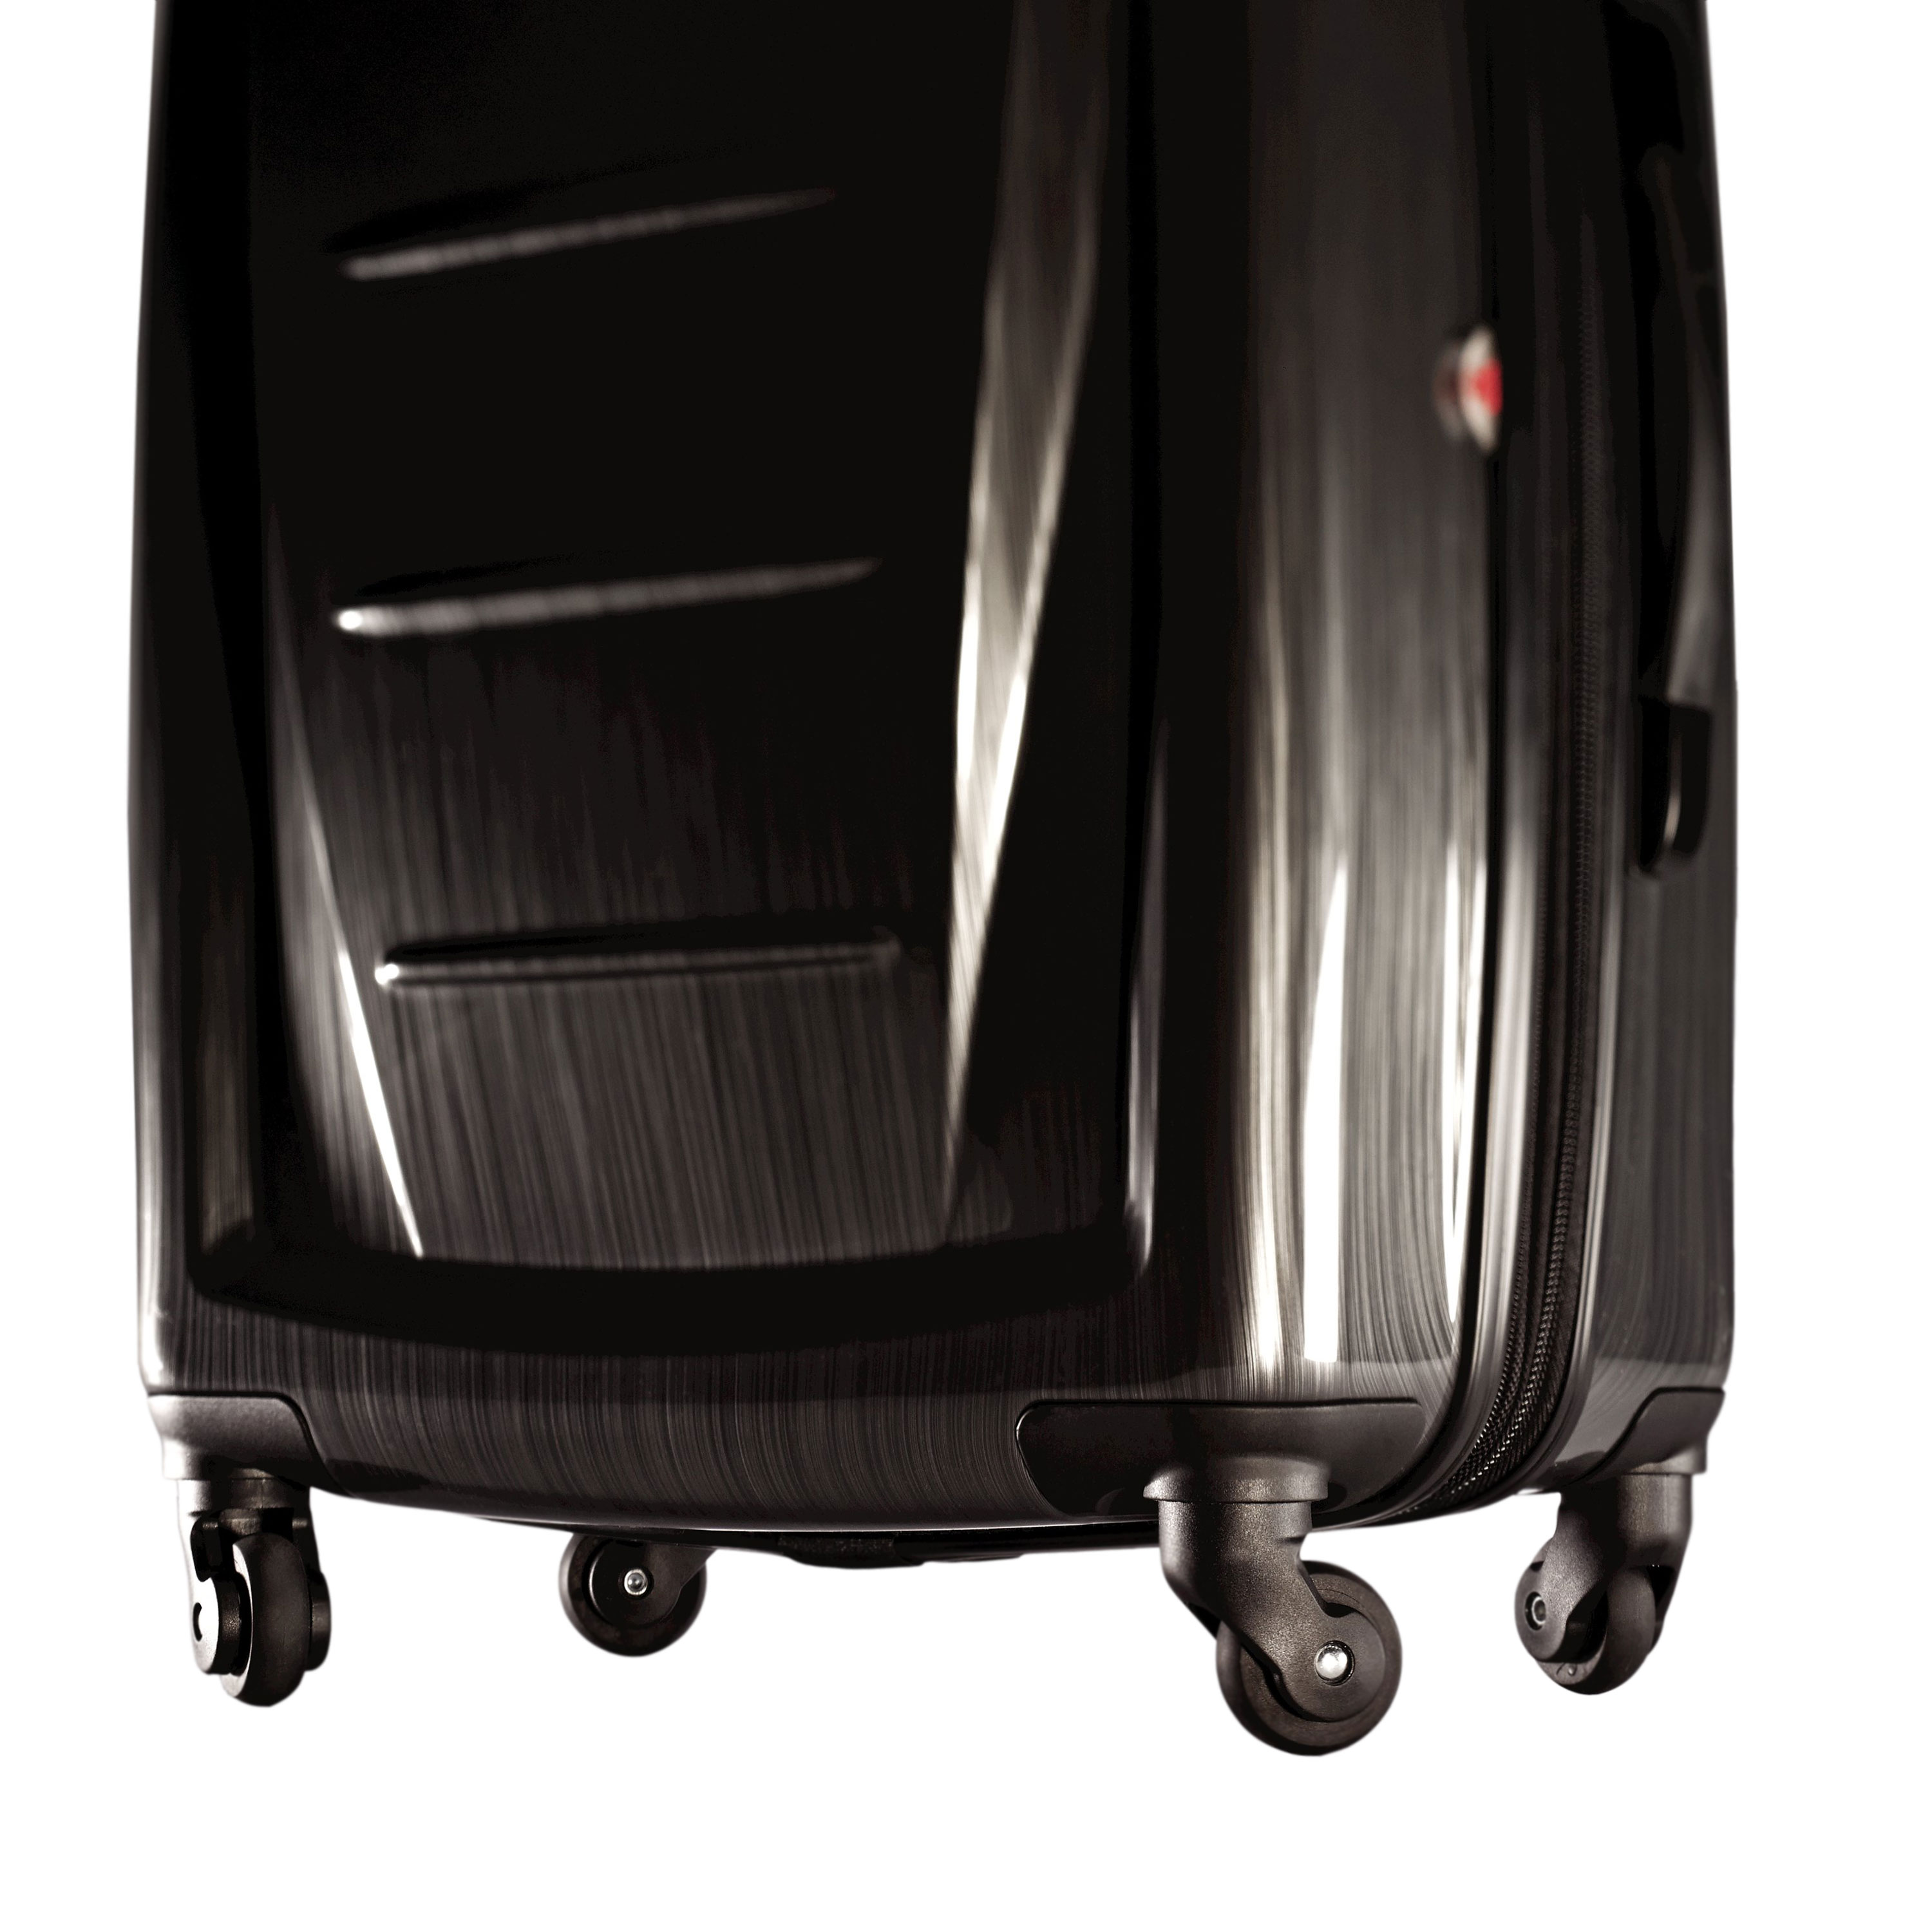 Samsonite-Winfield-2-Fashion-Spinner-Luggage thumbnail 16